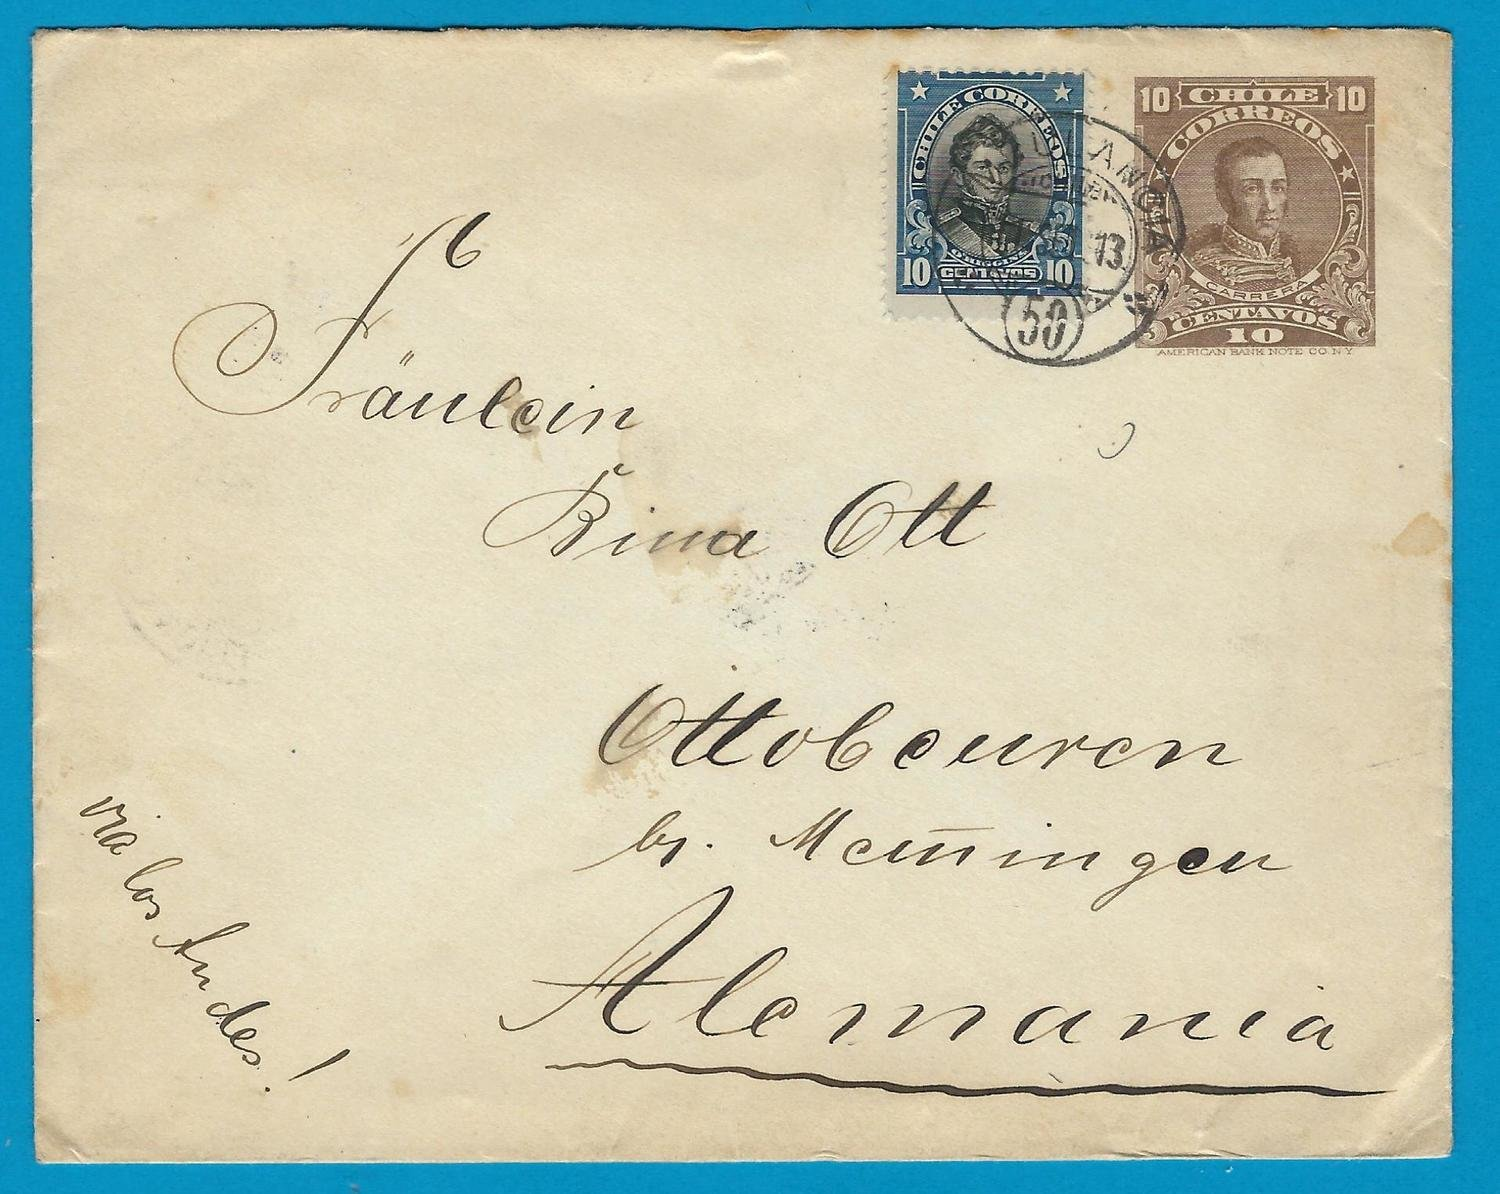 CHILE uprated envelope 1913 Ambulancia 50 to Germany